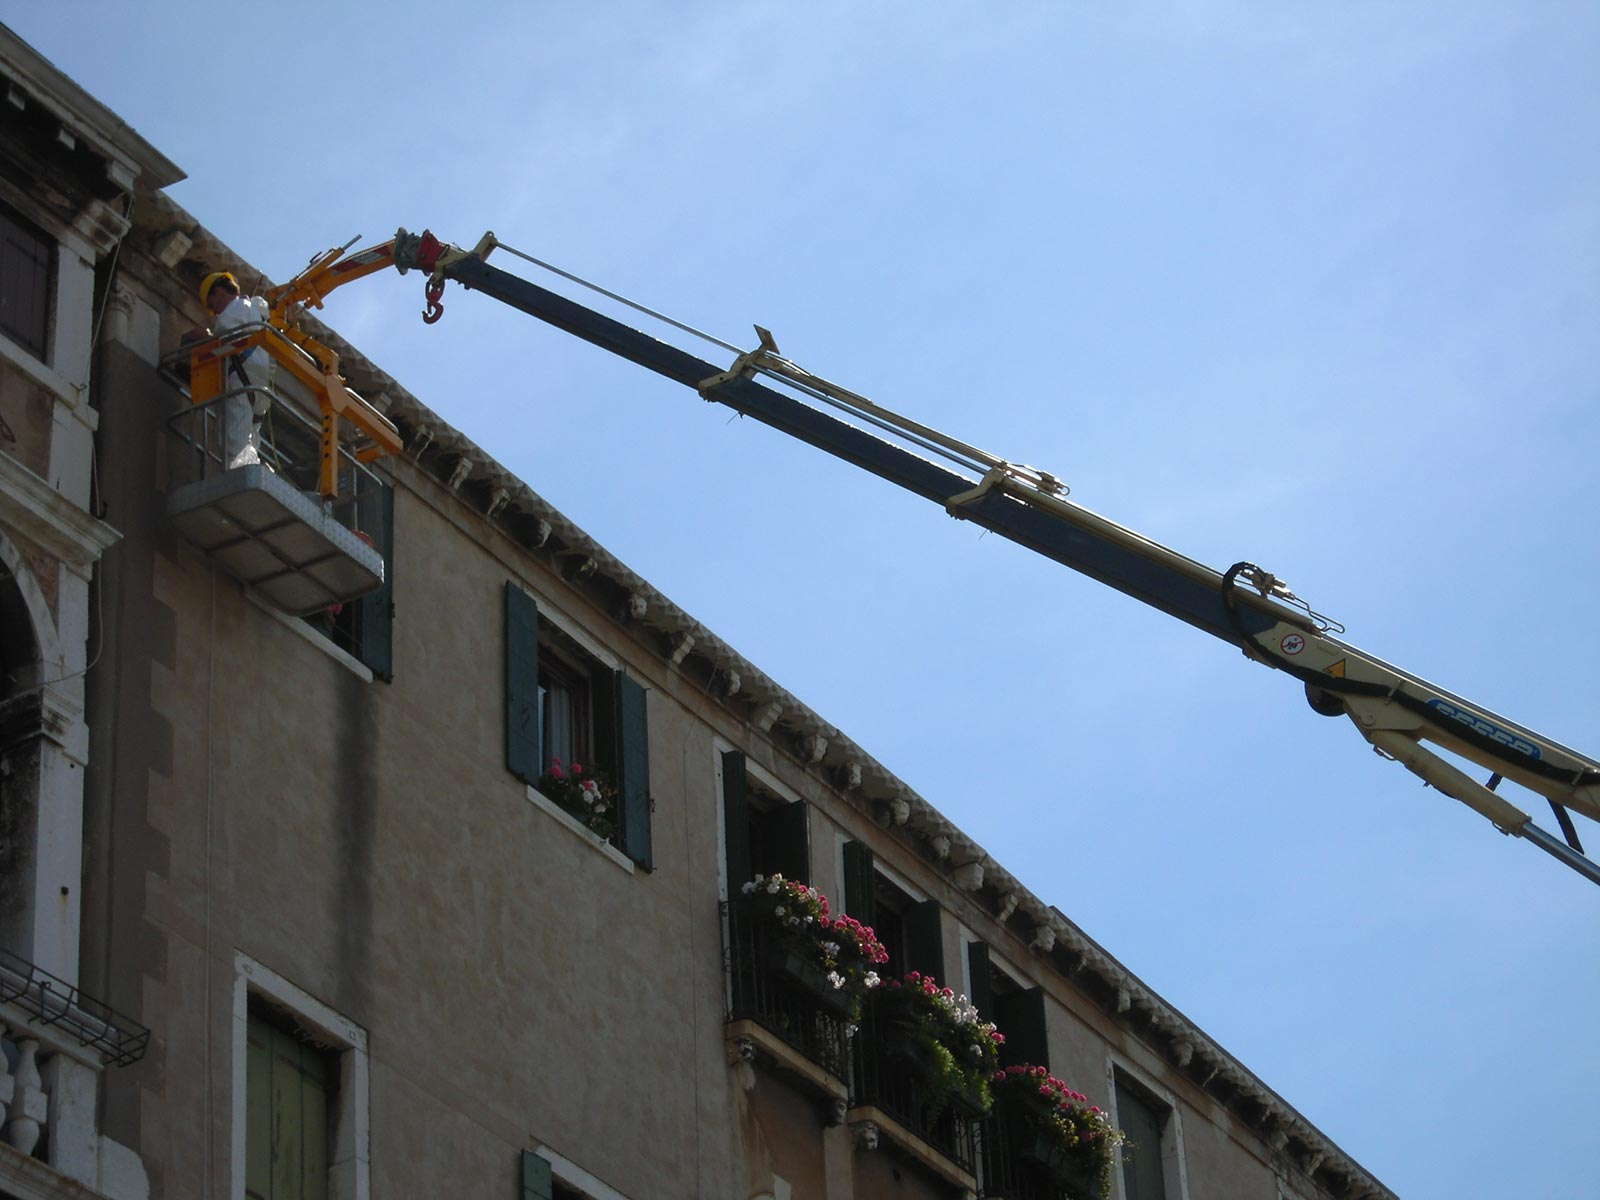 Aerial platforms for securing buildings